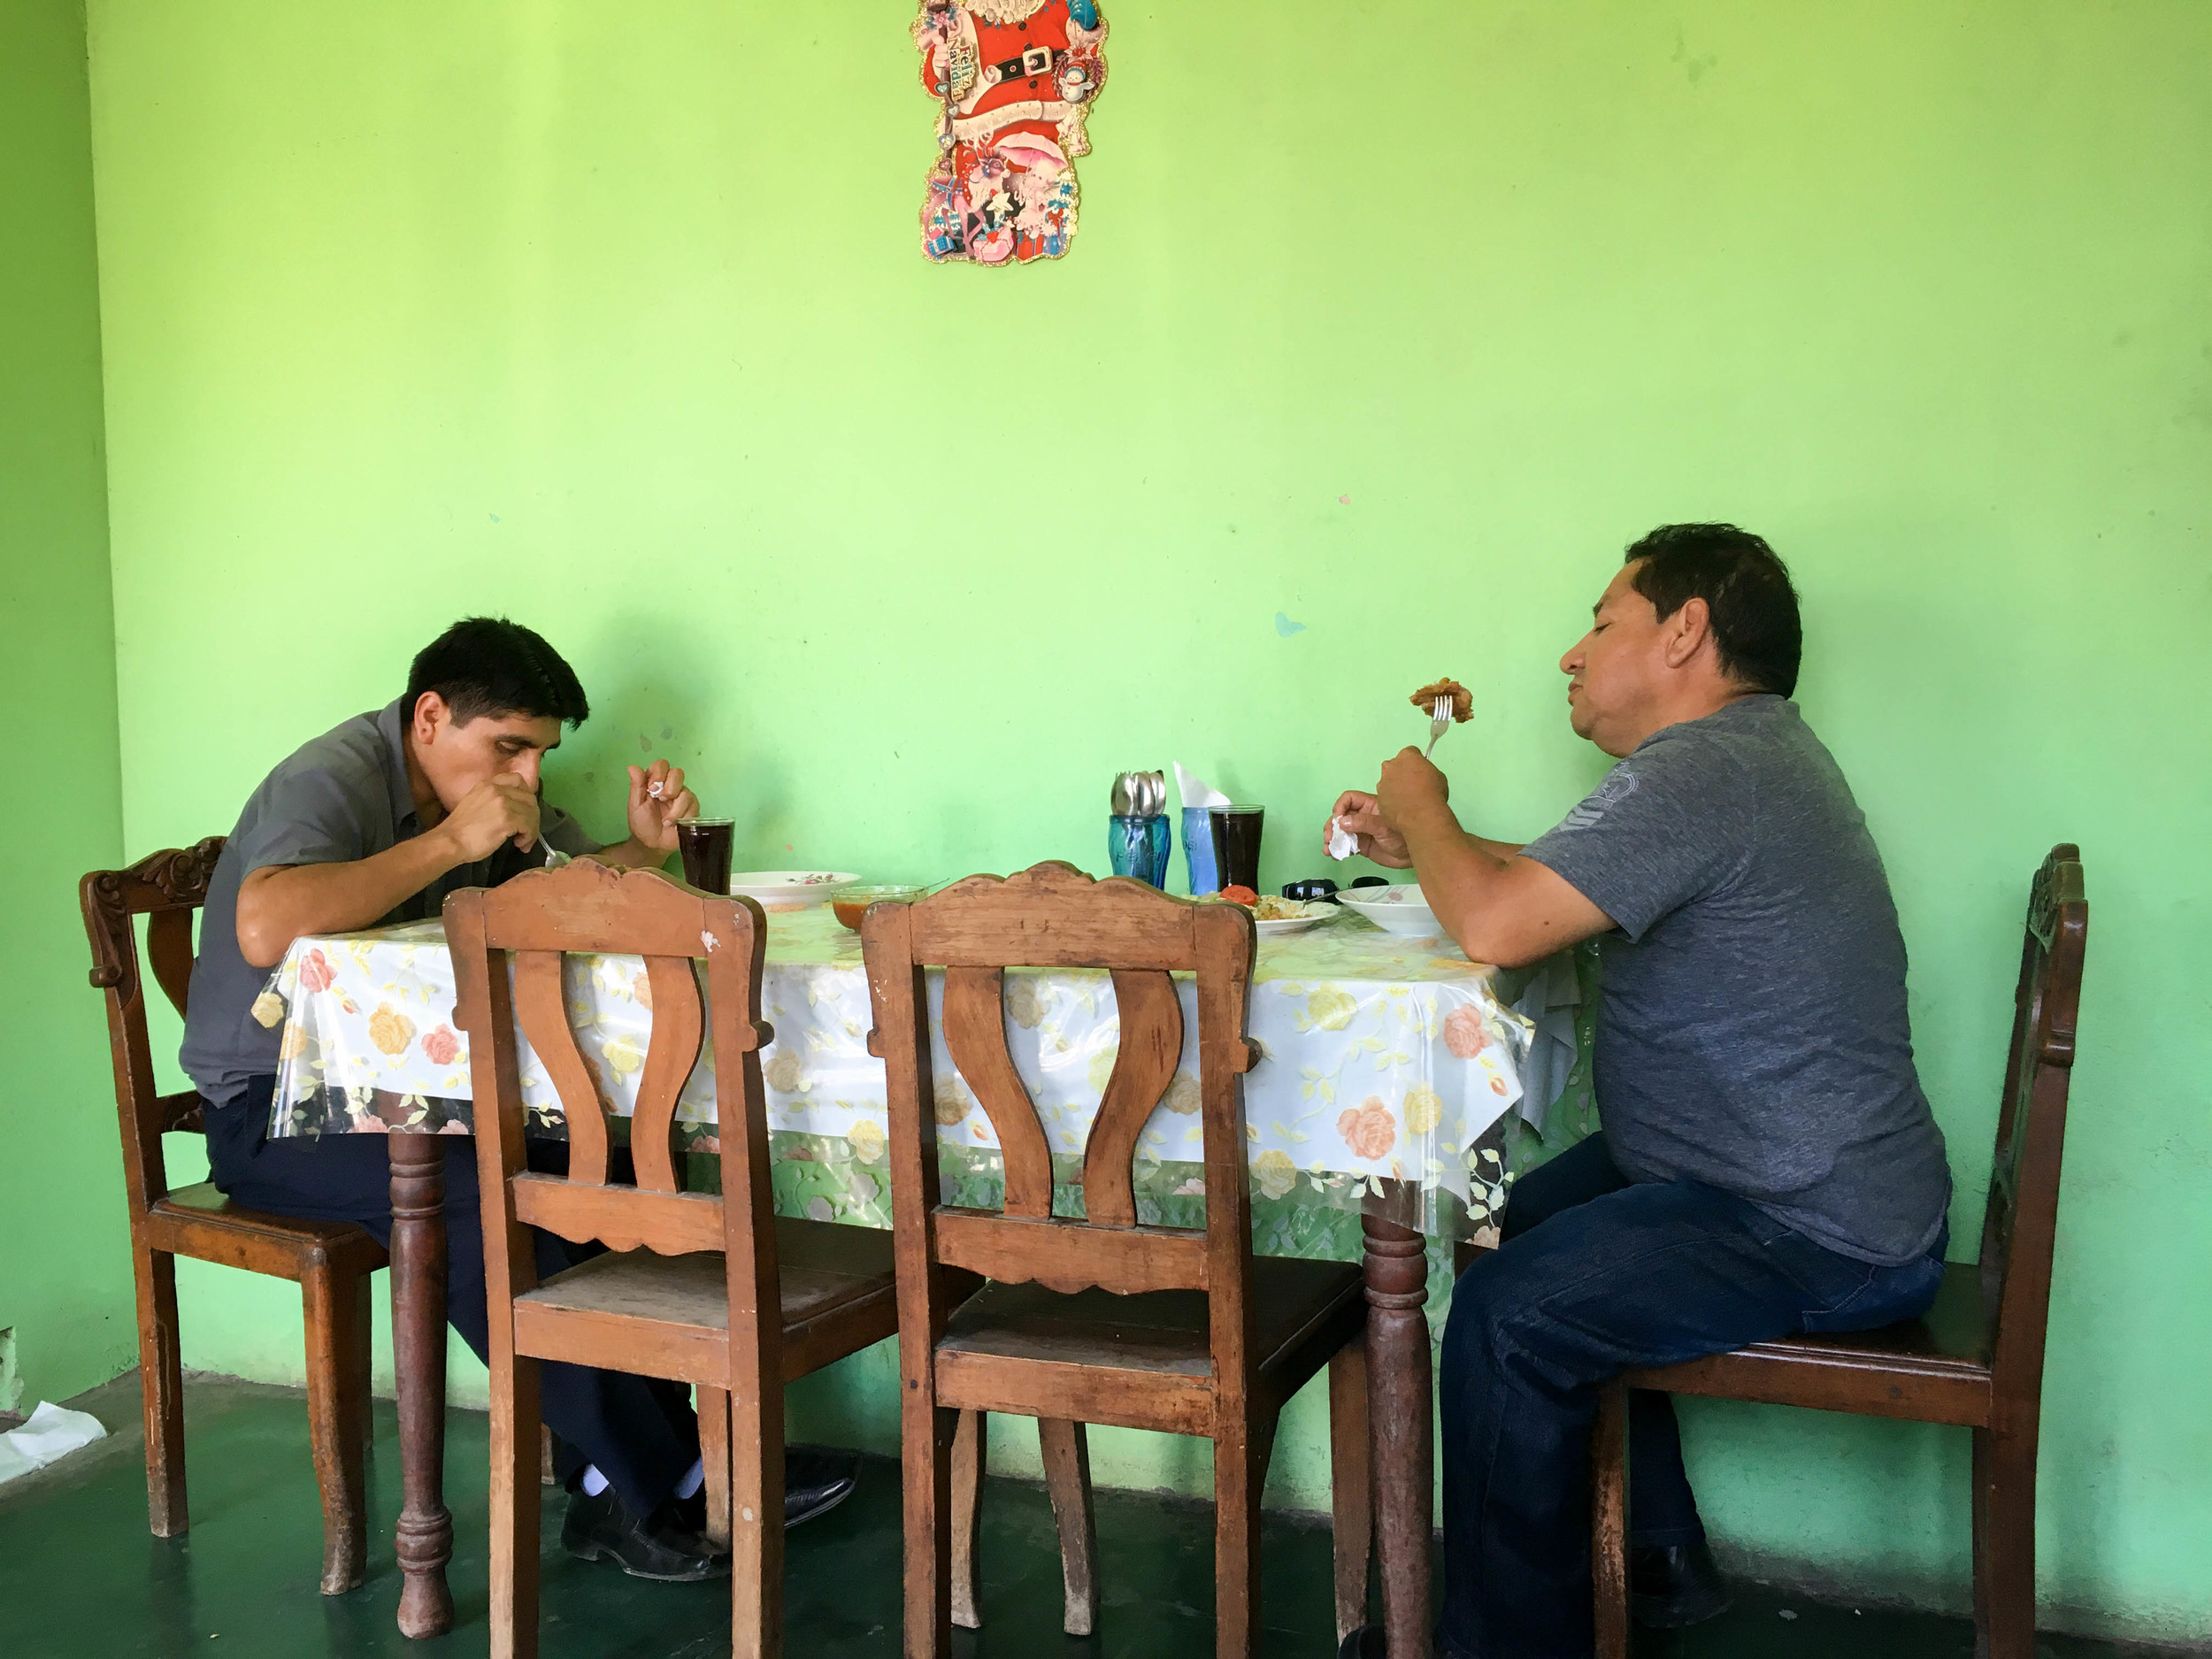 It is a constant ebb and flow of hungry patrons at lunch time in Esperanza's kitchen.